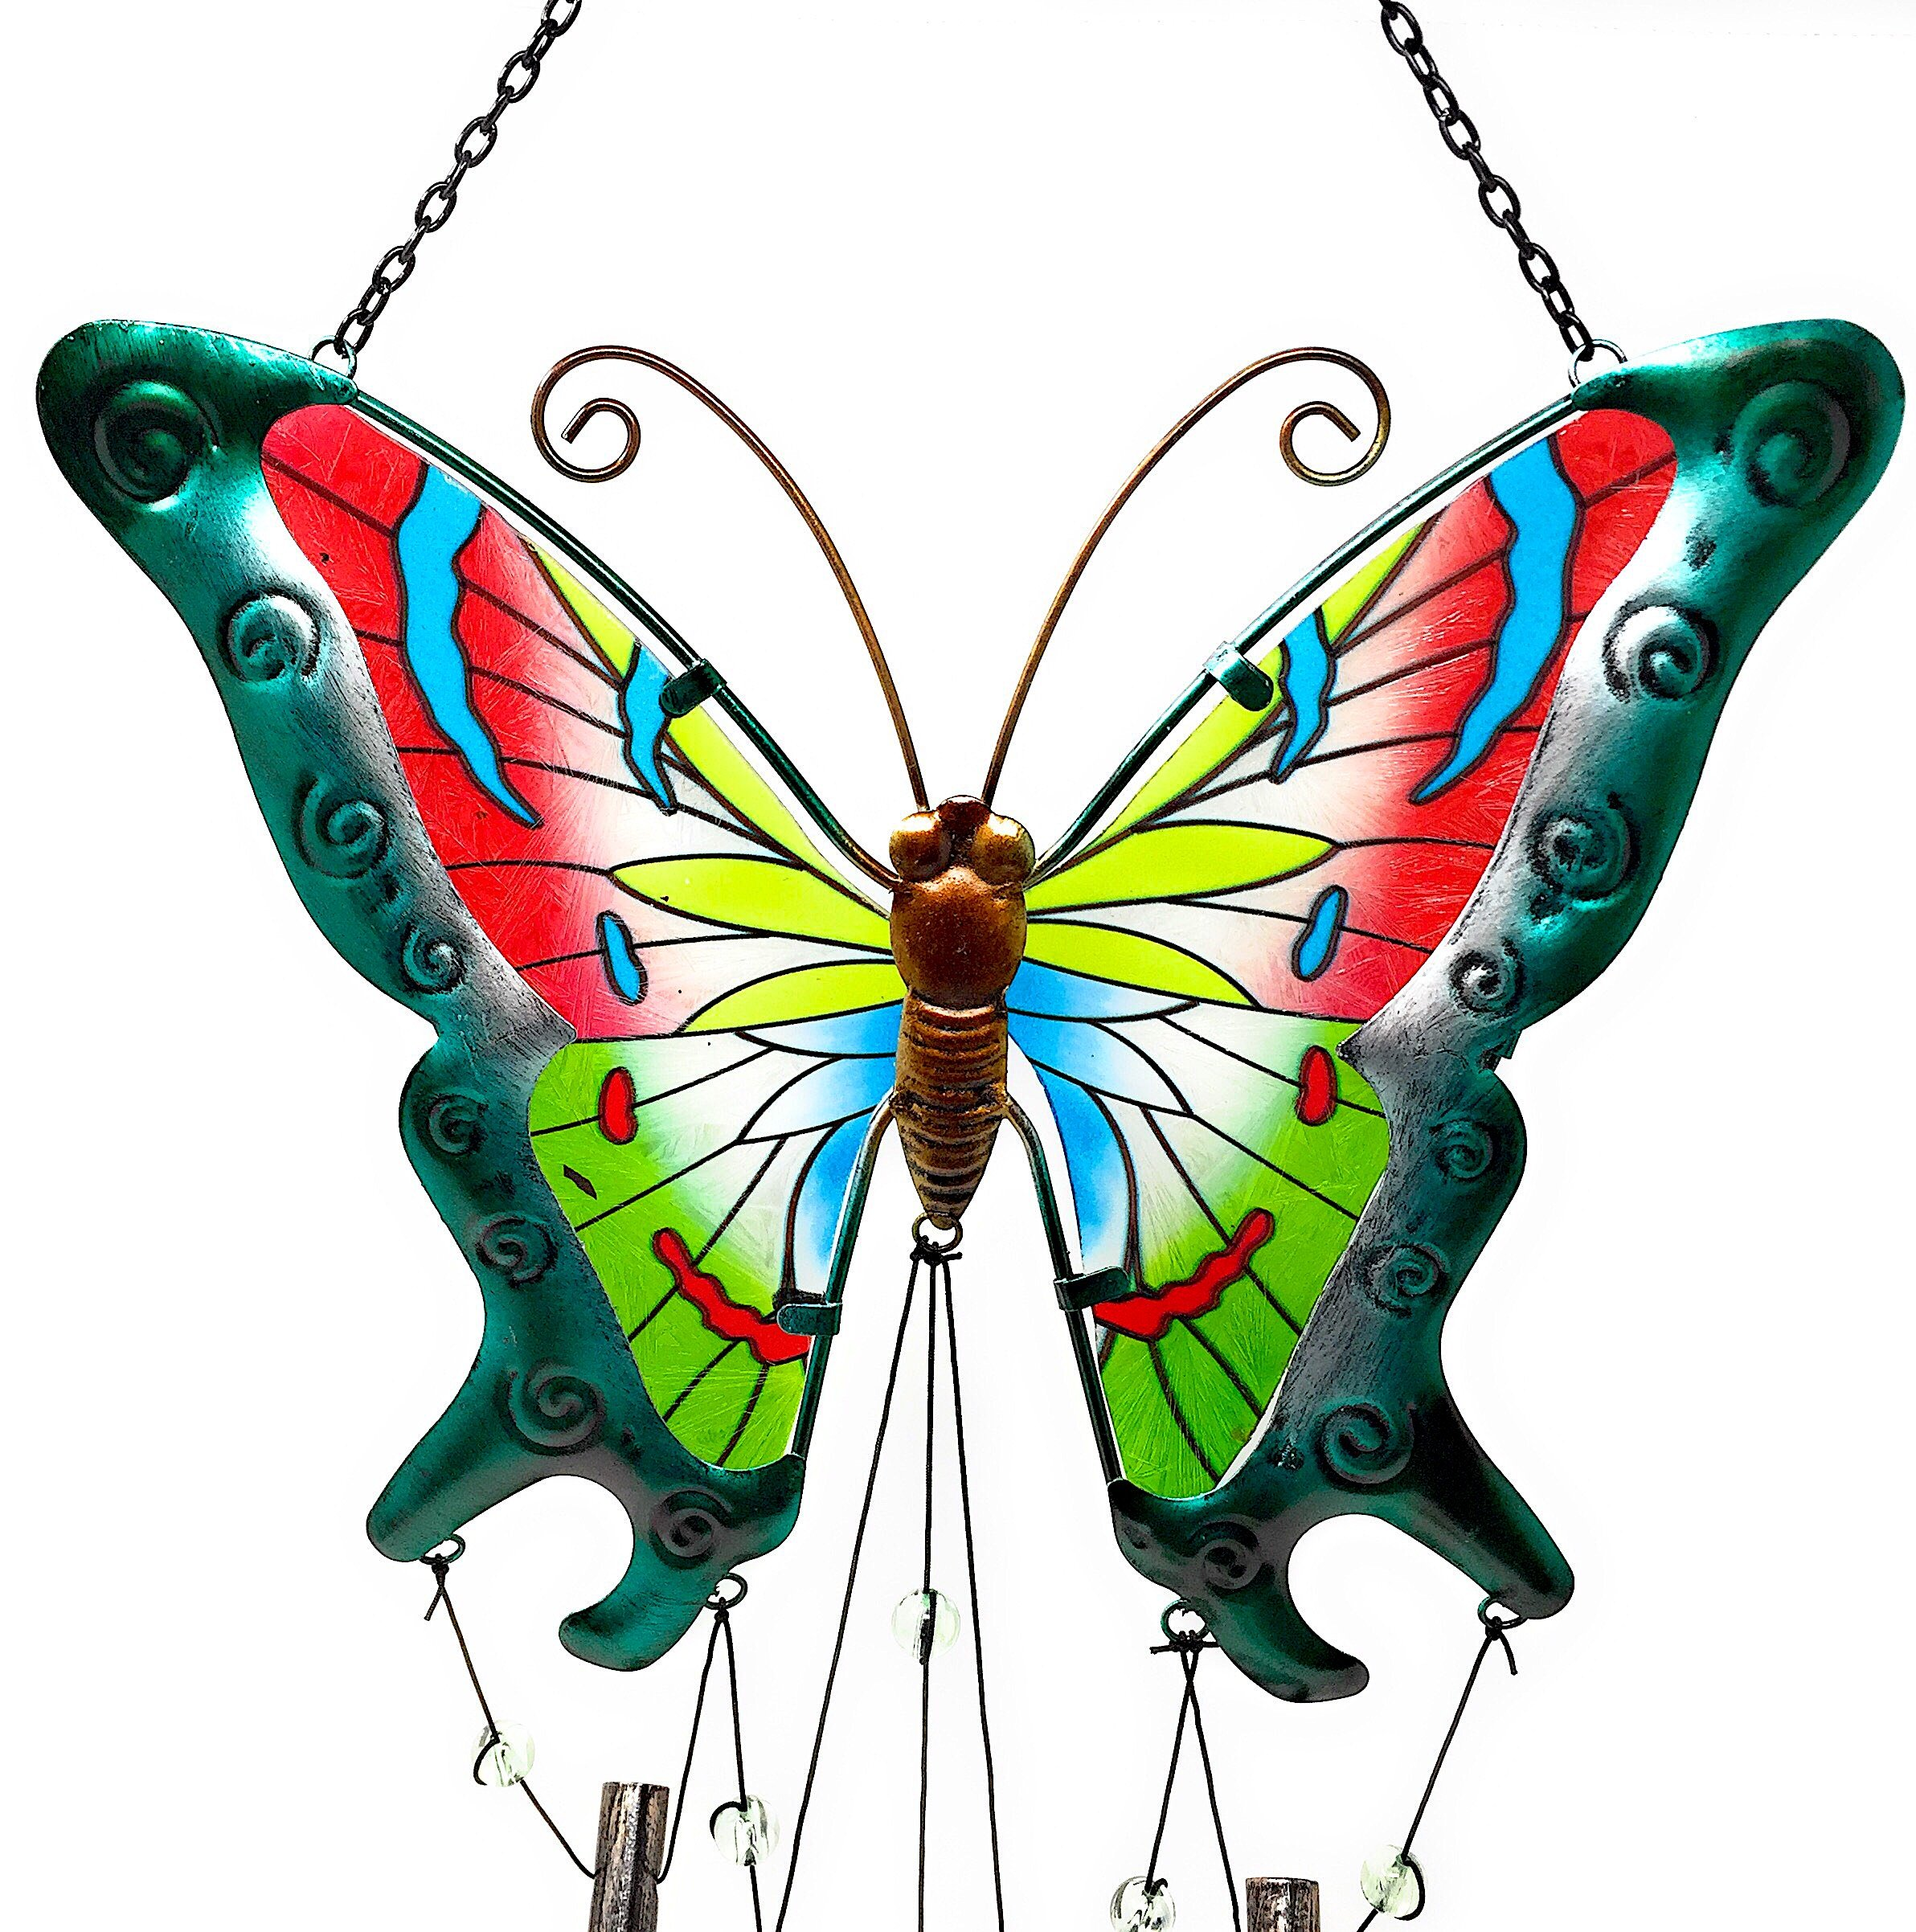 """Wind Chime Charm Butterfly Colorful Metal Glass for Indoor Outdoor 38"""" x 10"""" (Green)"""